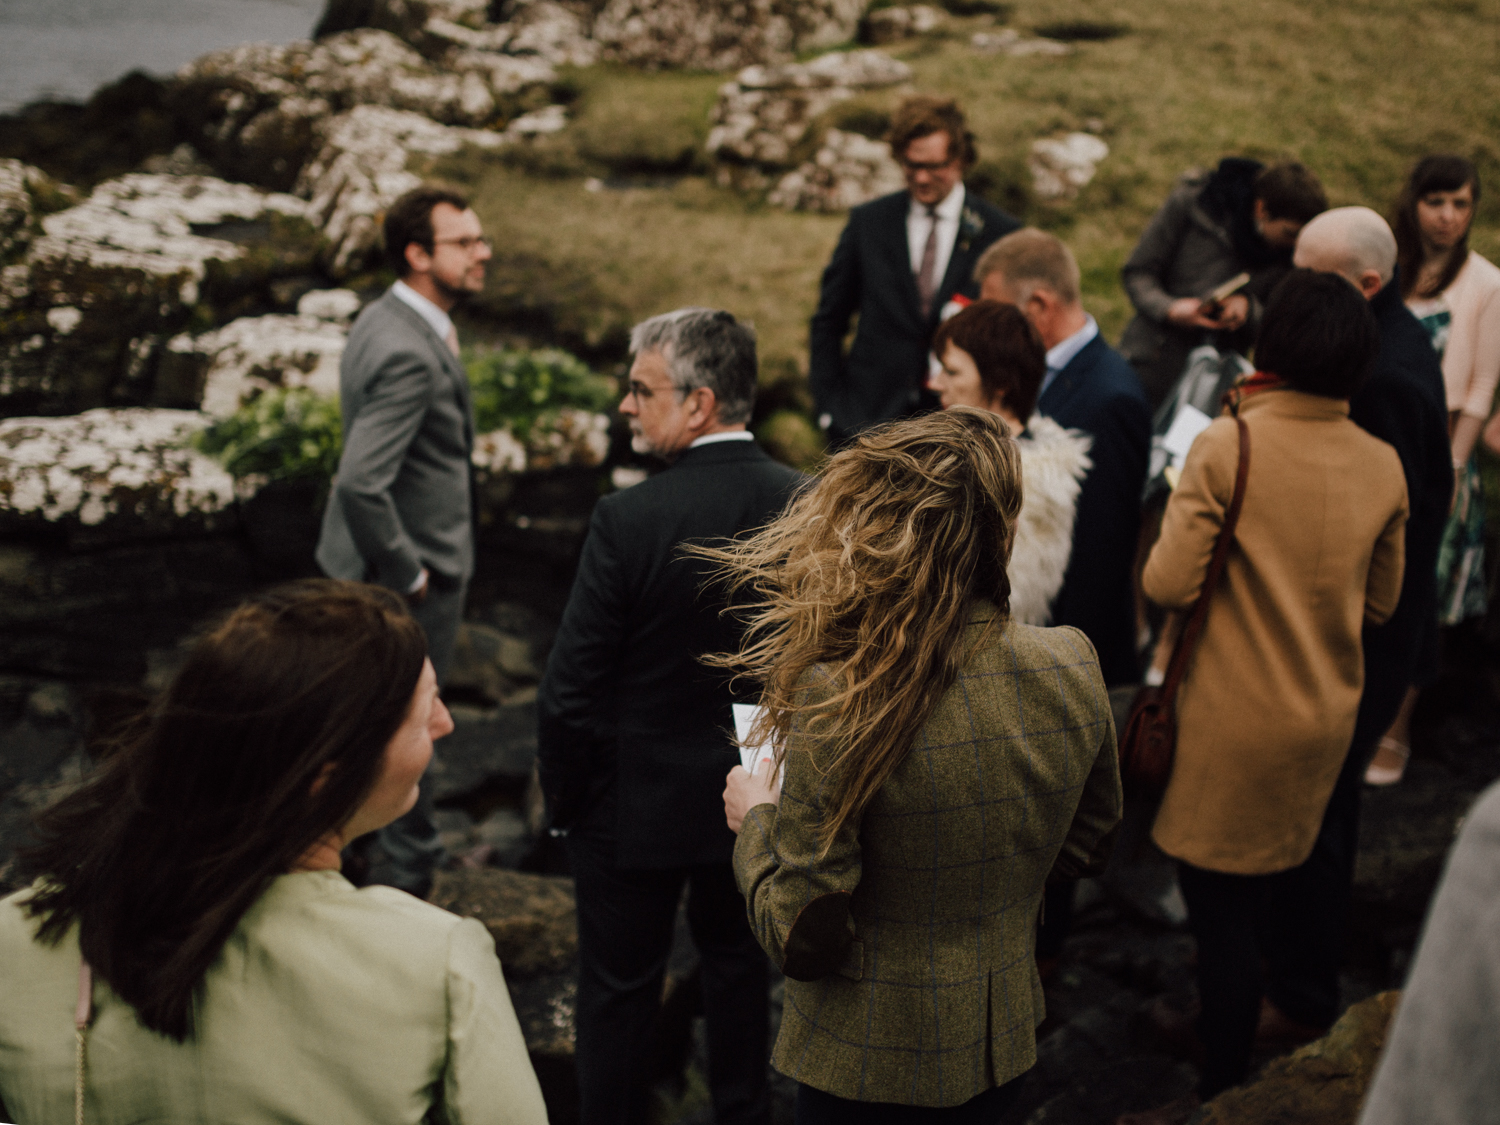 capyture-wedding-photographer-destination-nature-intimate-wedding-isle-of-skye-scotland-208